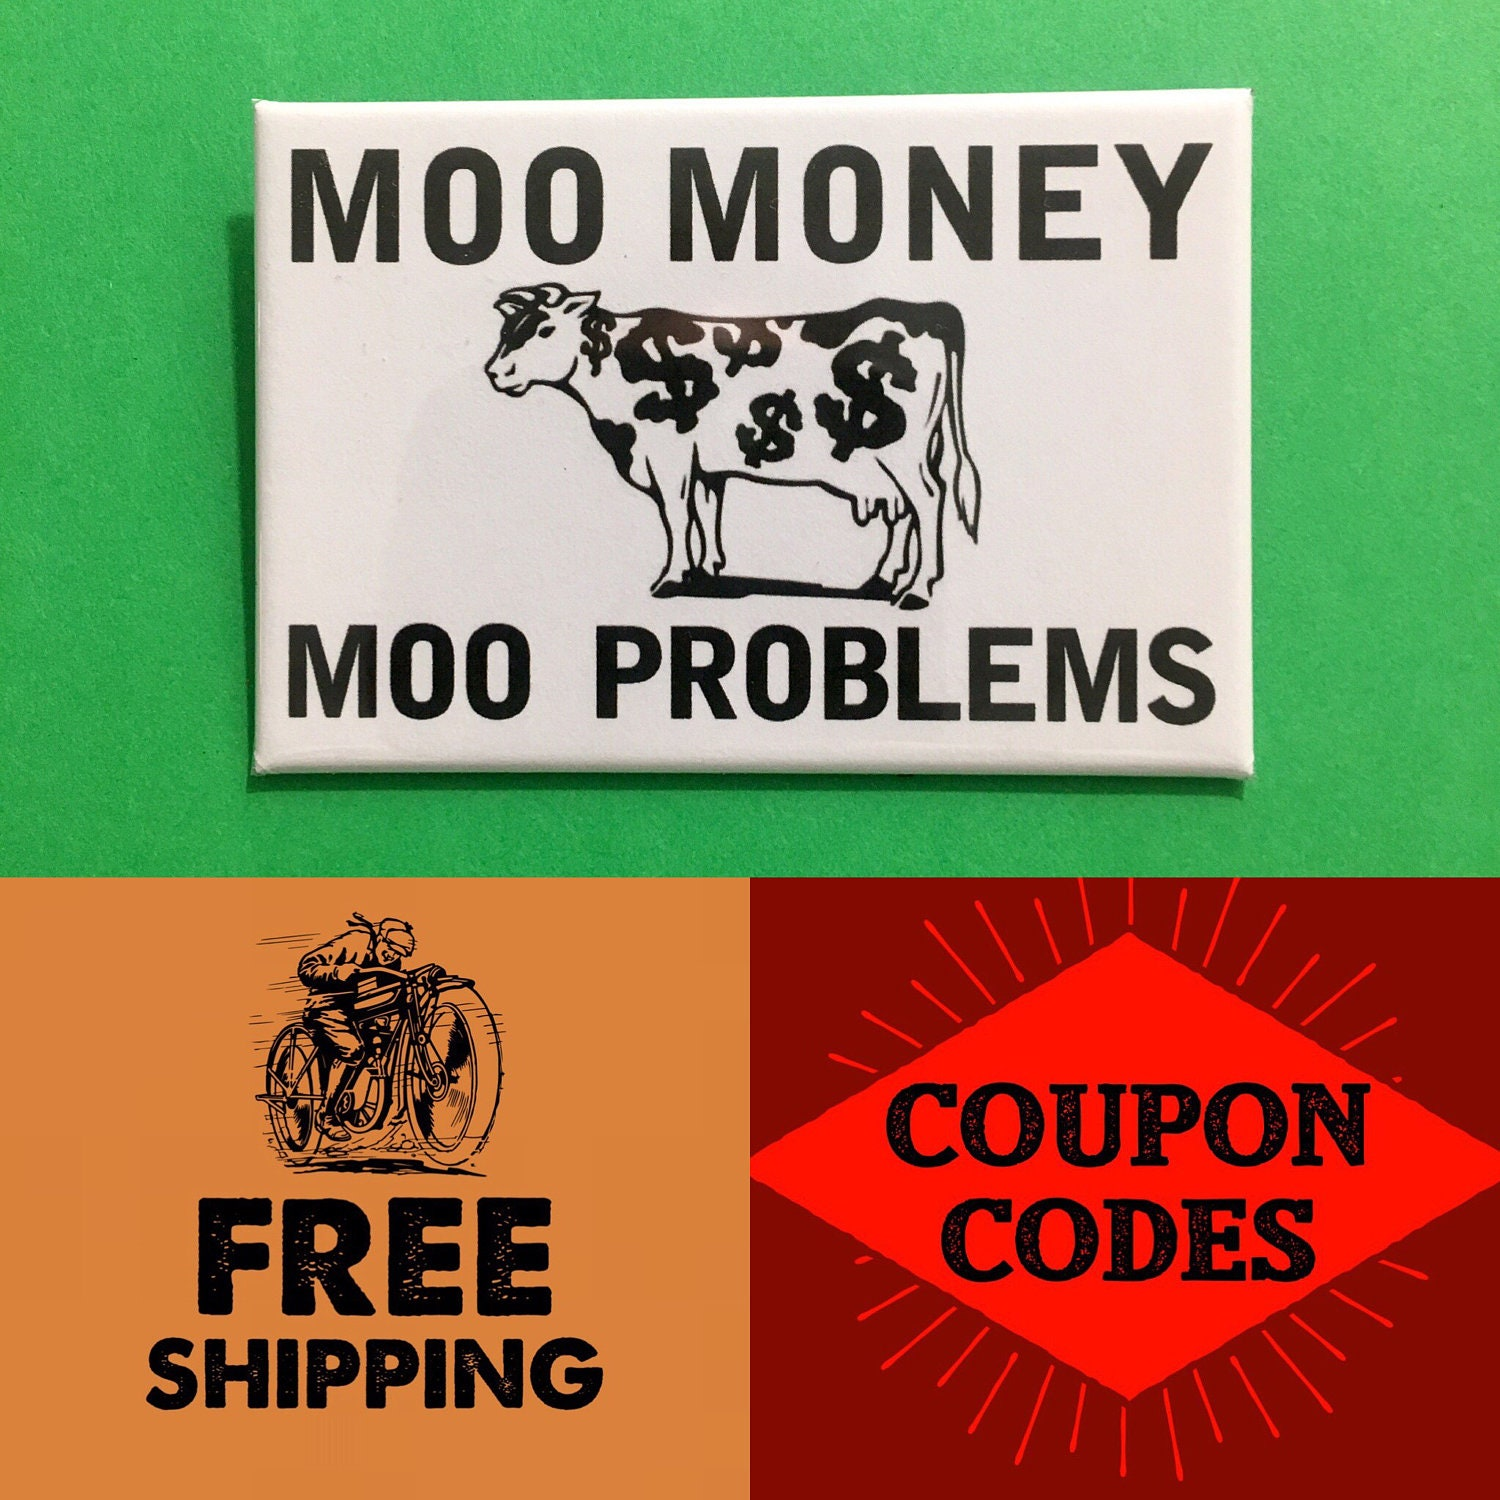 Moo.com coupon code